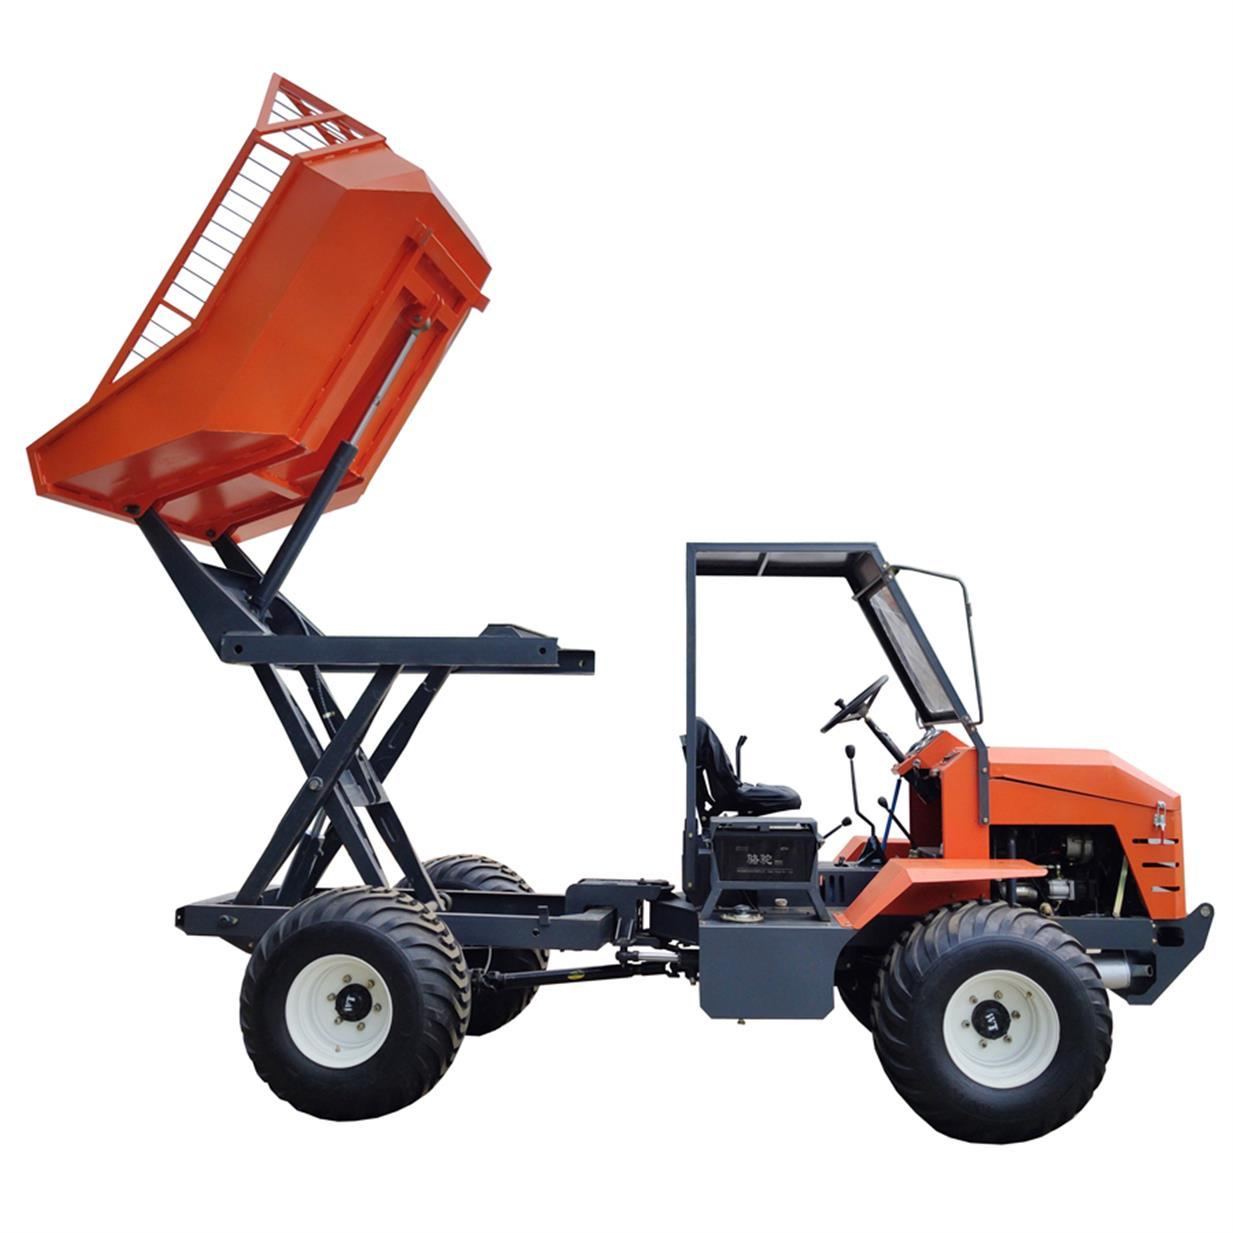 High Lifting container 4WD Palm Oil Tractor 6